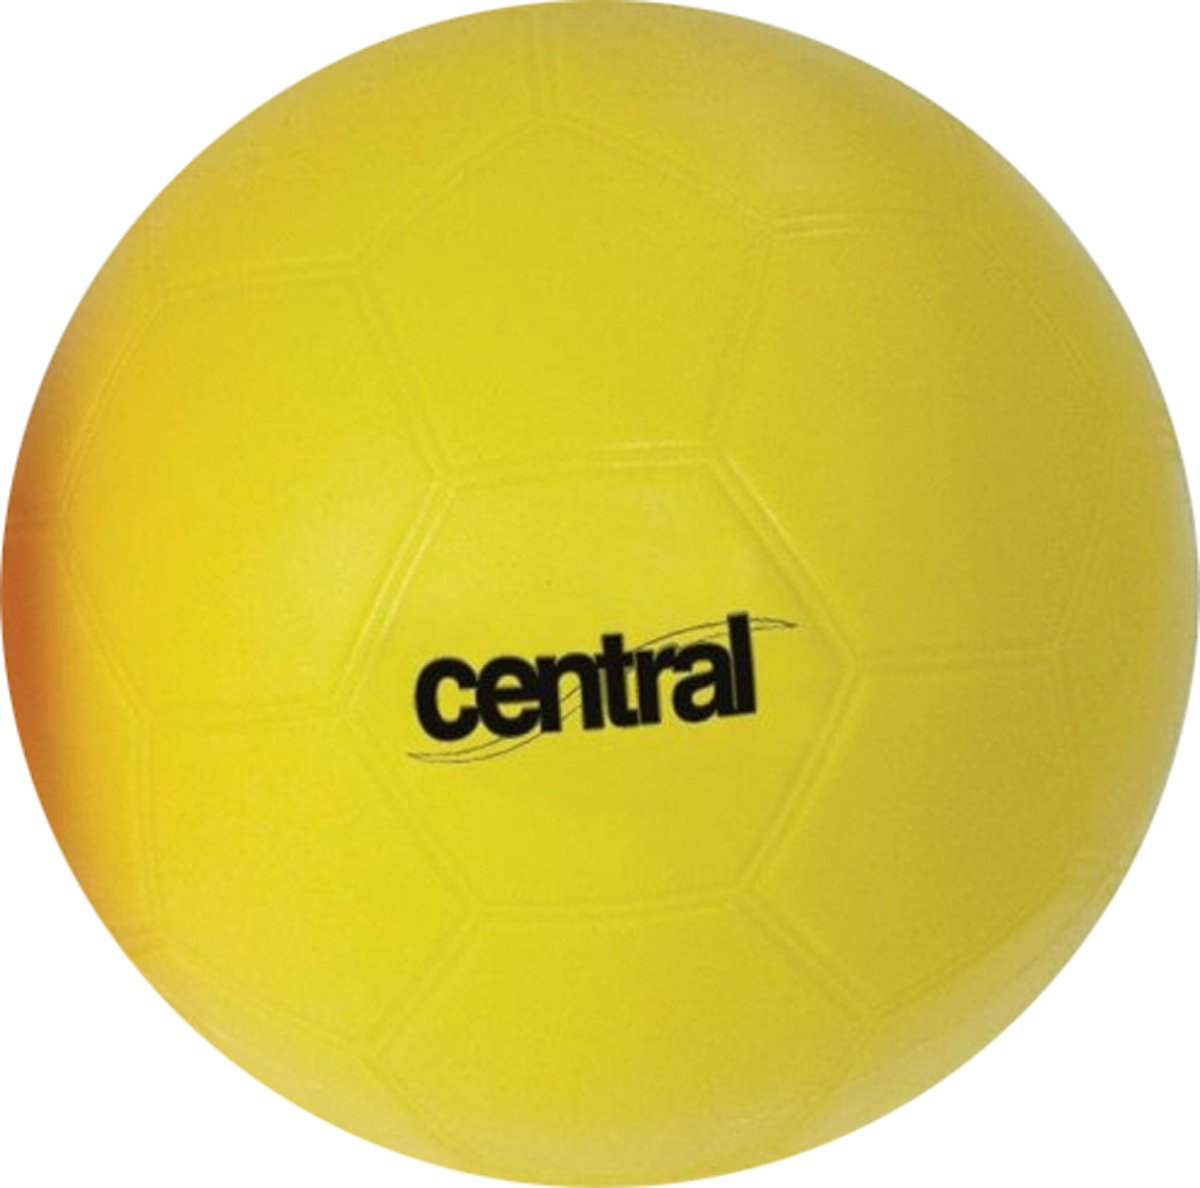 CreativeMinds UK Central - Pelota de balonmano para niños (tamaño ...